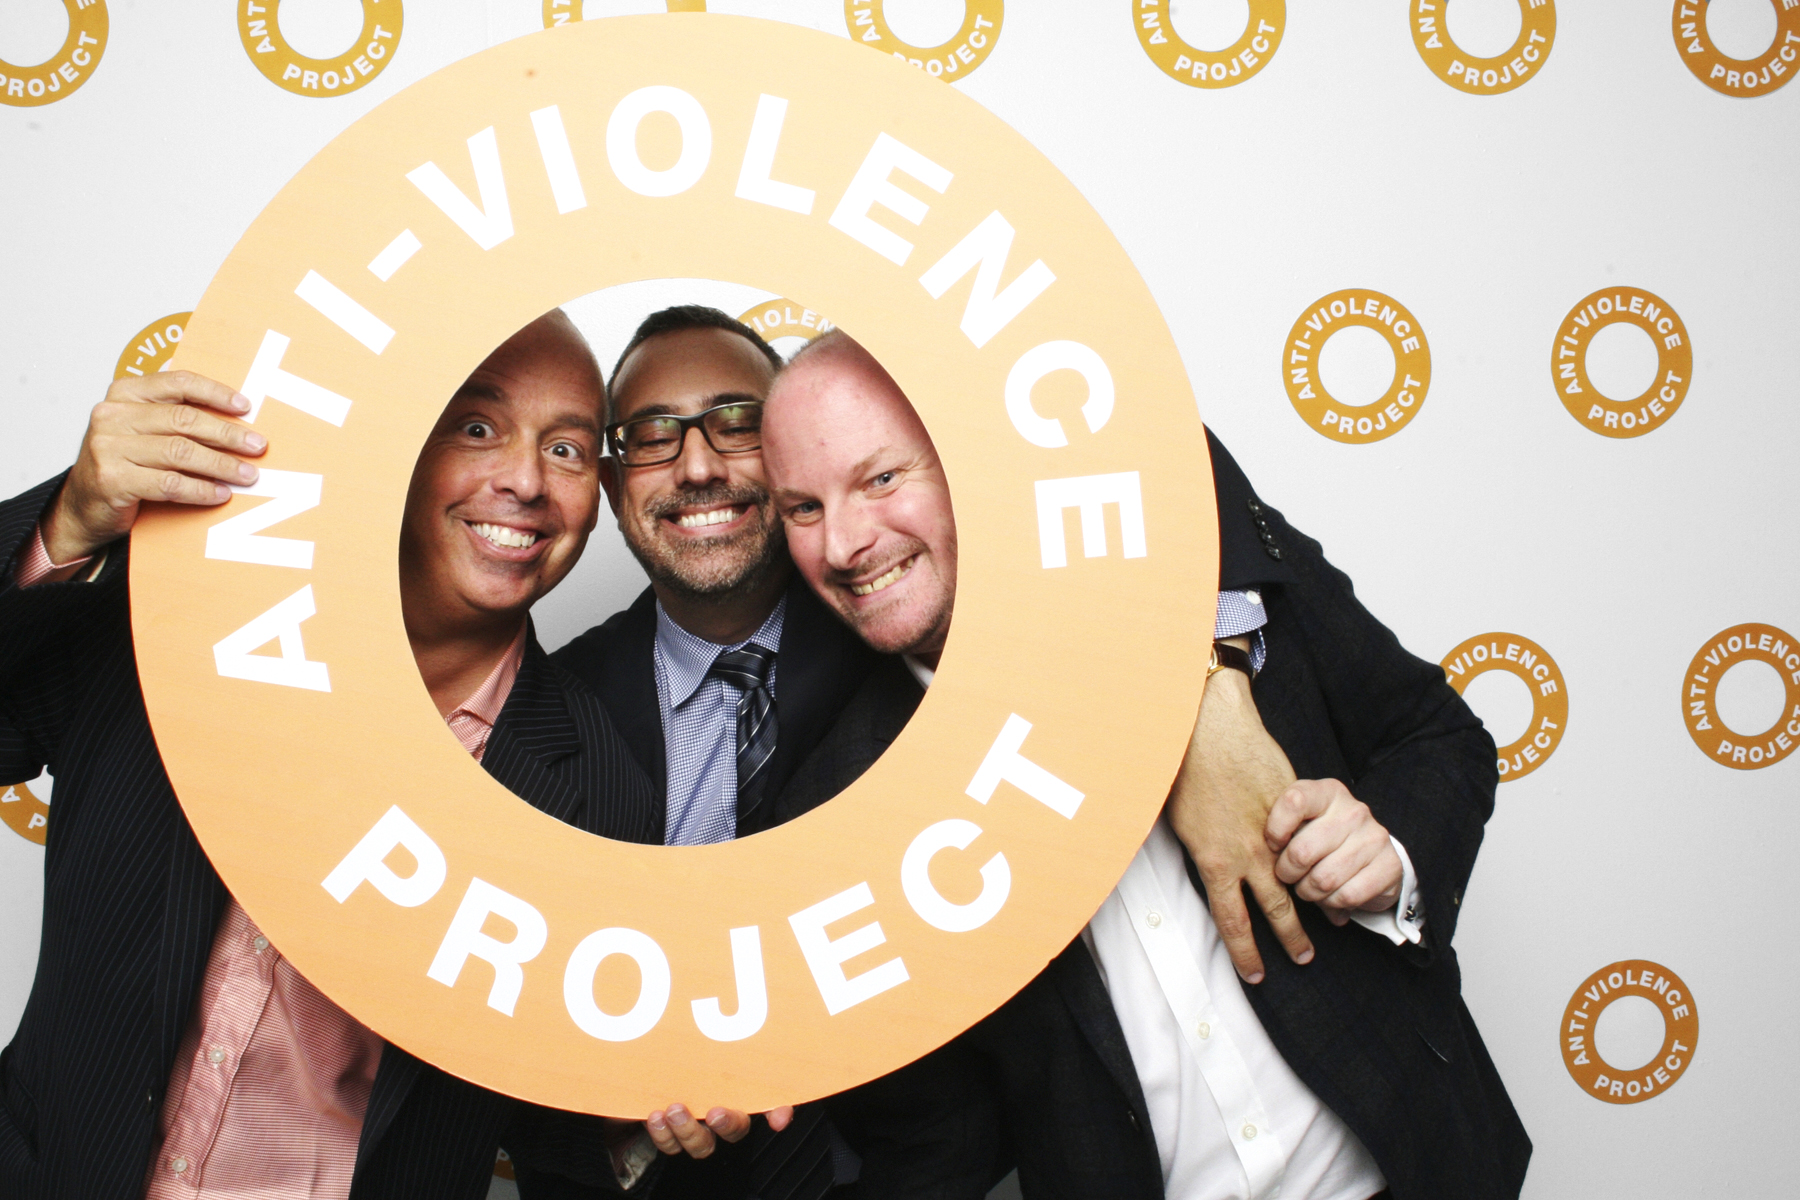 Antiviolence project ring